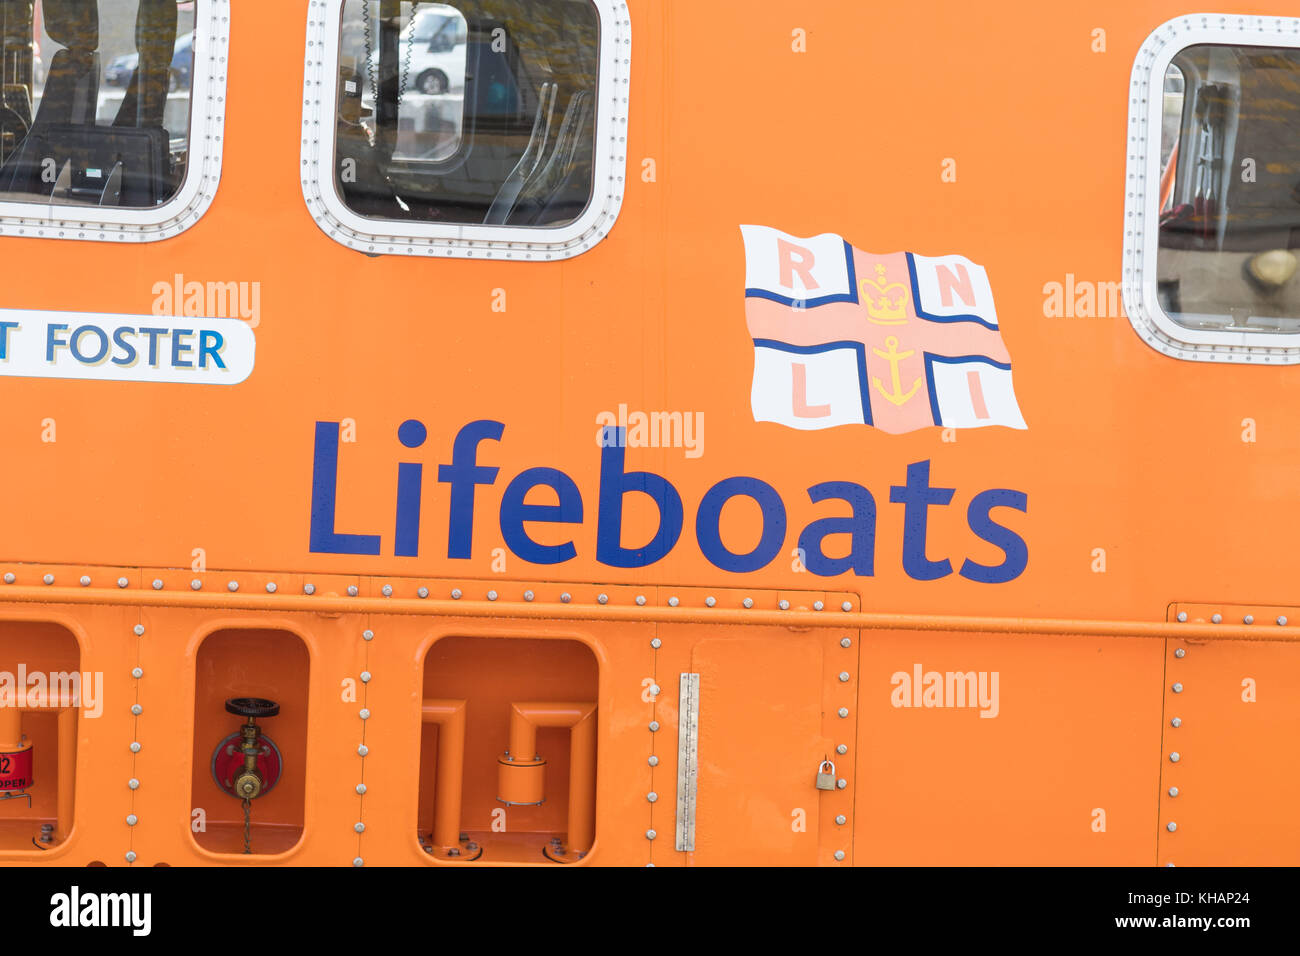 RNLI lifeboats sign and logo - Stock Image